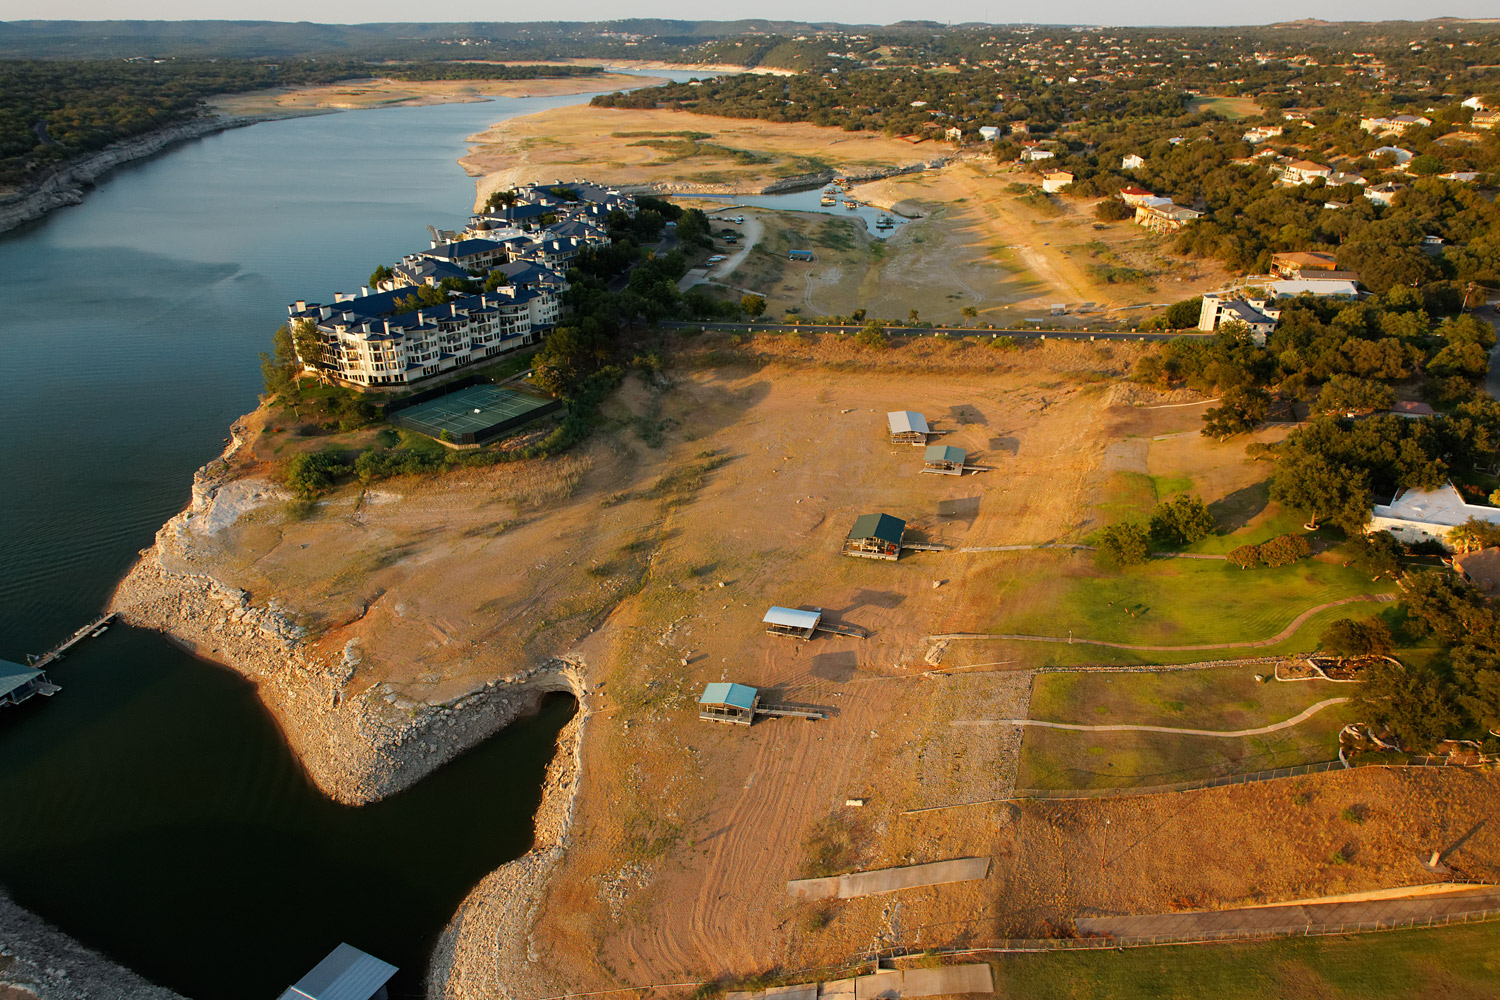 The Island,  a resort on Lake Travis, is normally a peninsula surrounded almost completely by water. The level of the Lake has dropped, and it now sits on dry land, as do the neighboring boat docks.